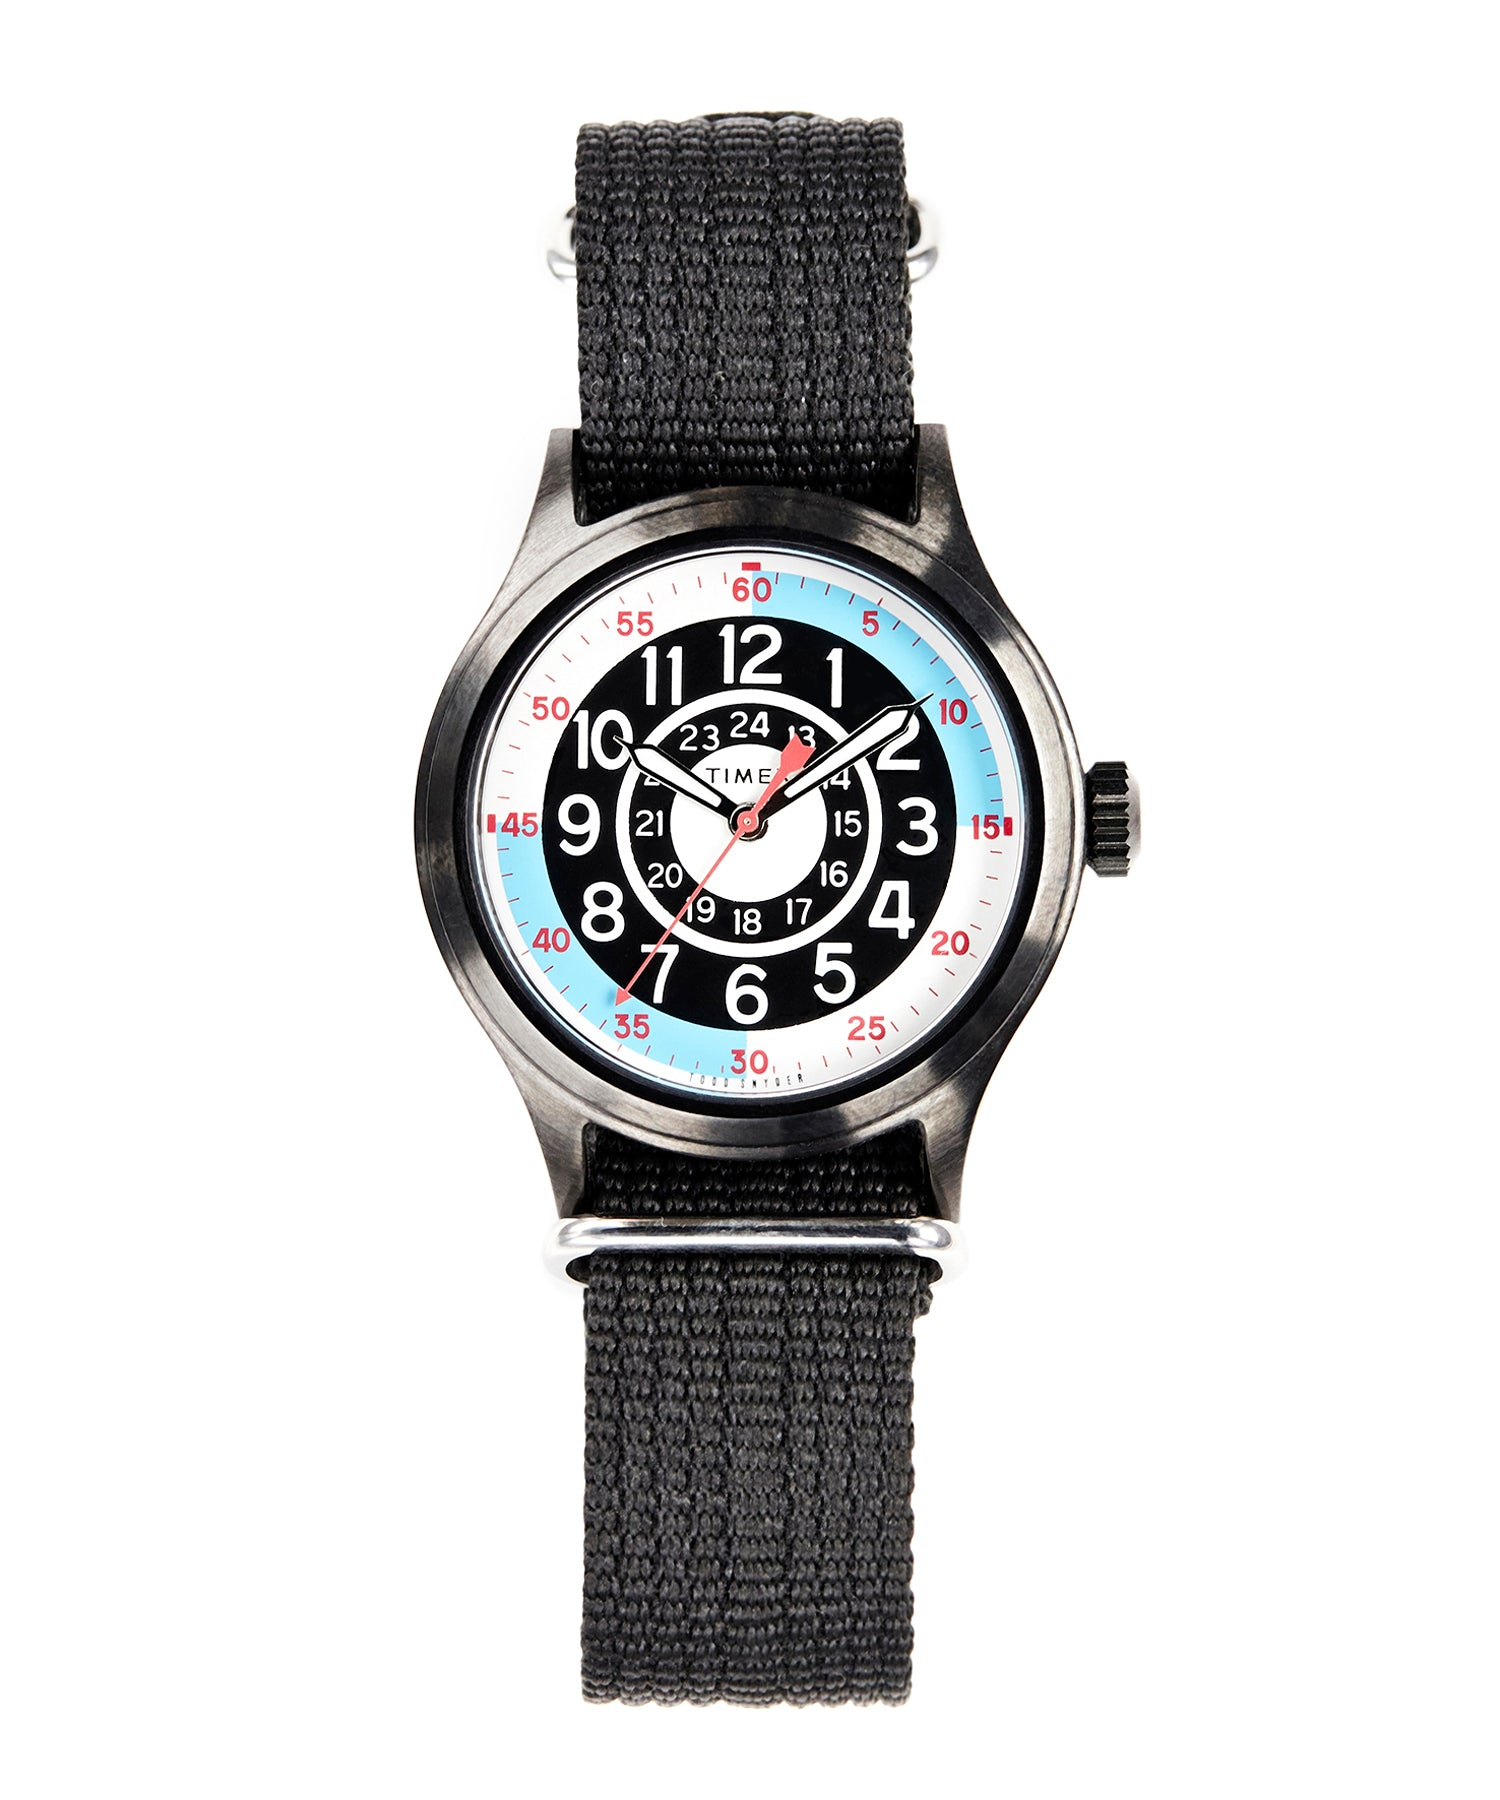 The Blackjack Watch 40mm